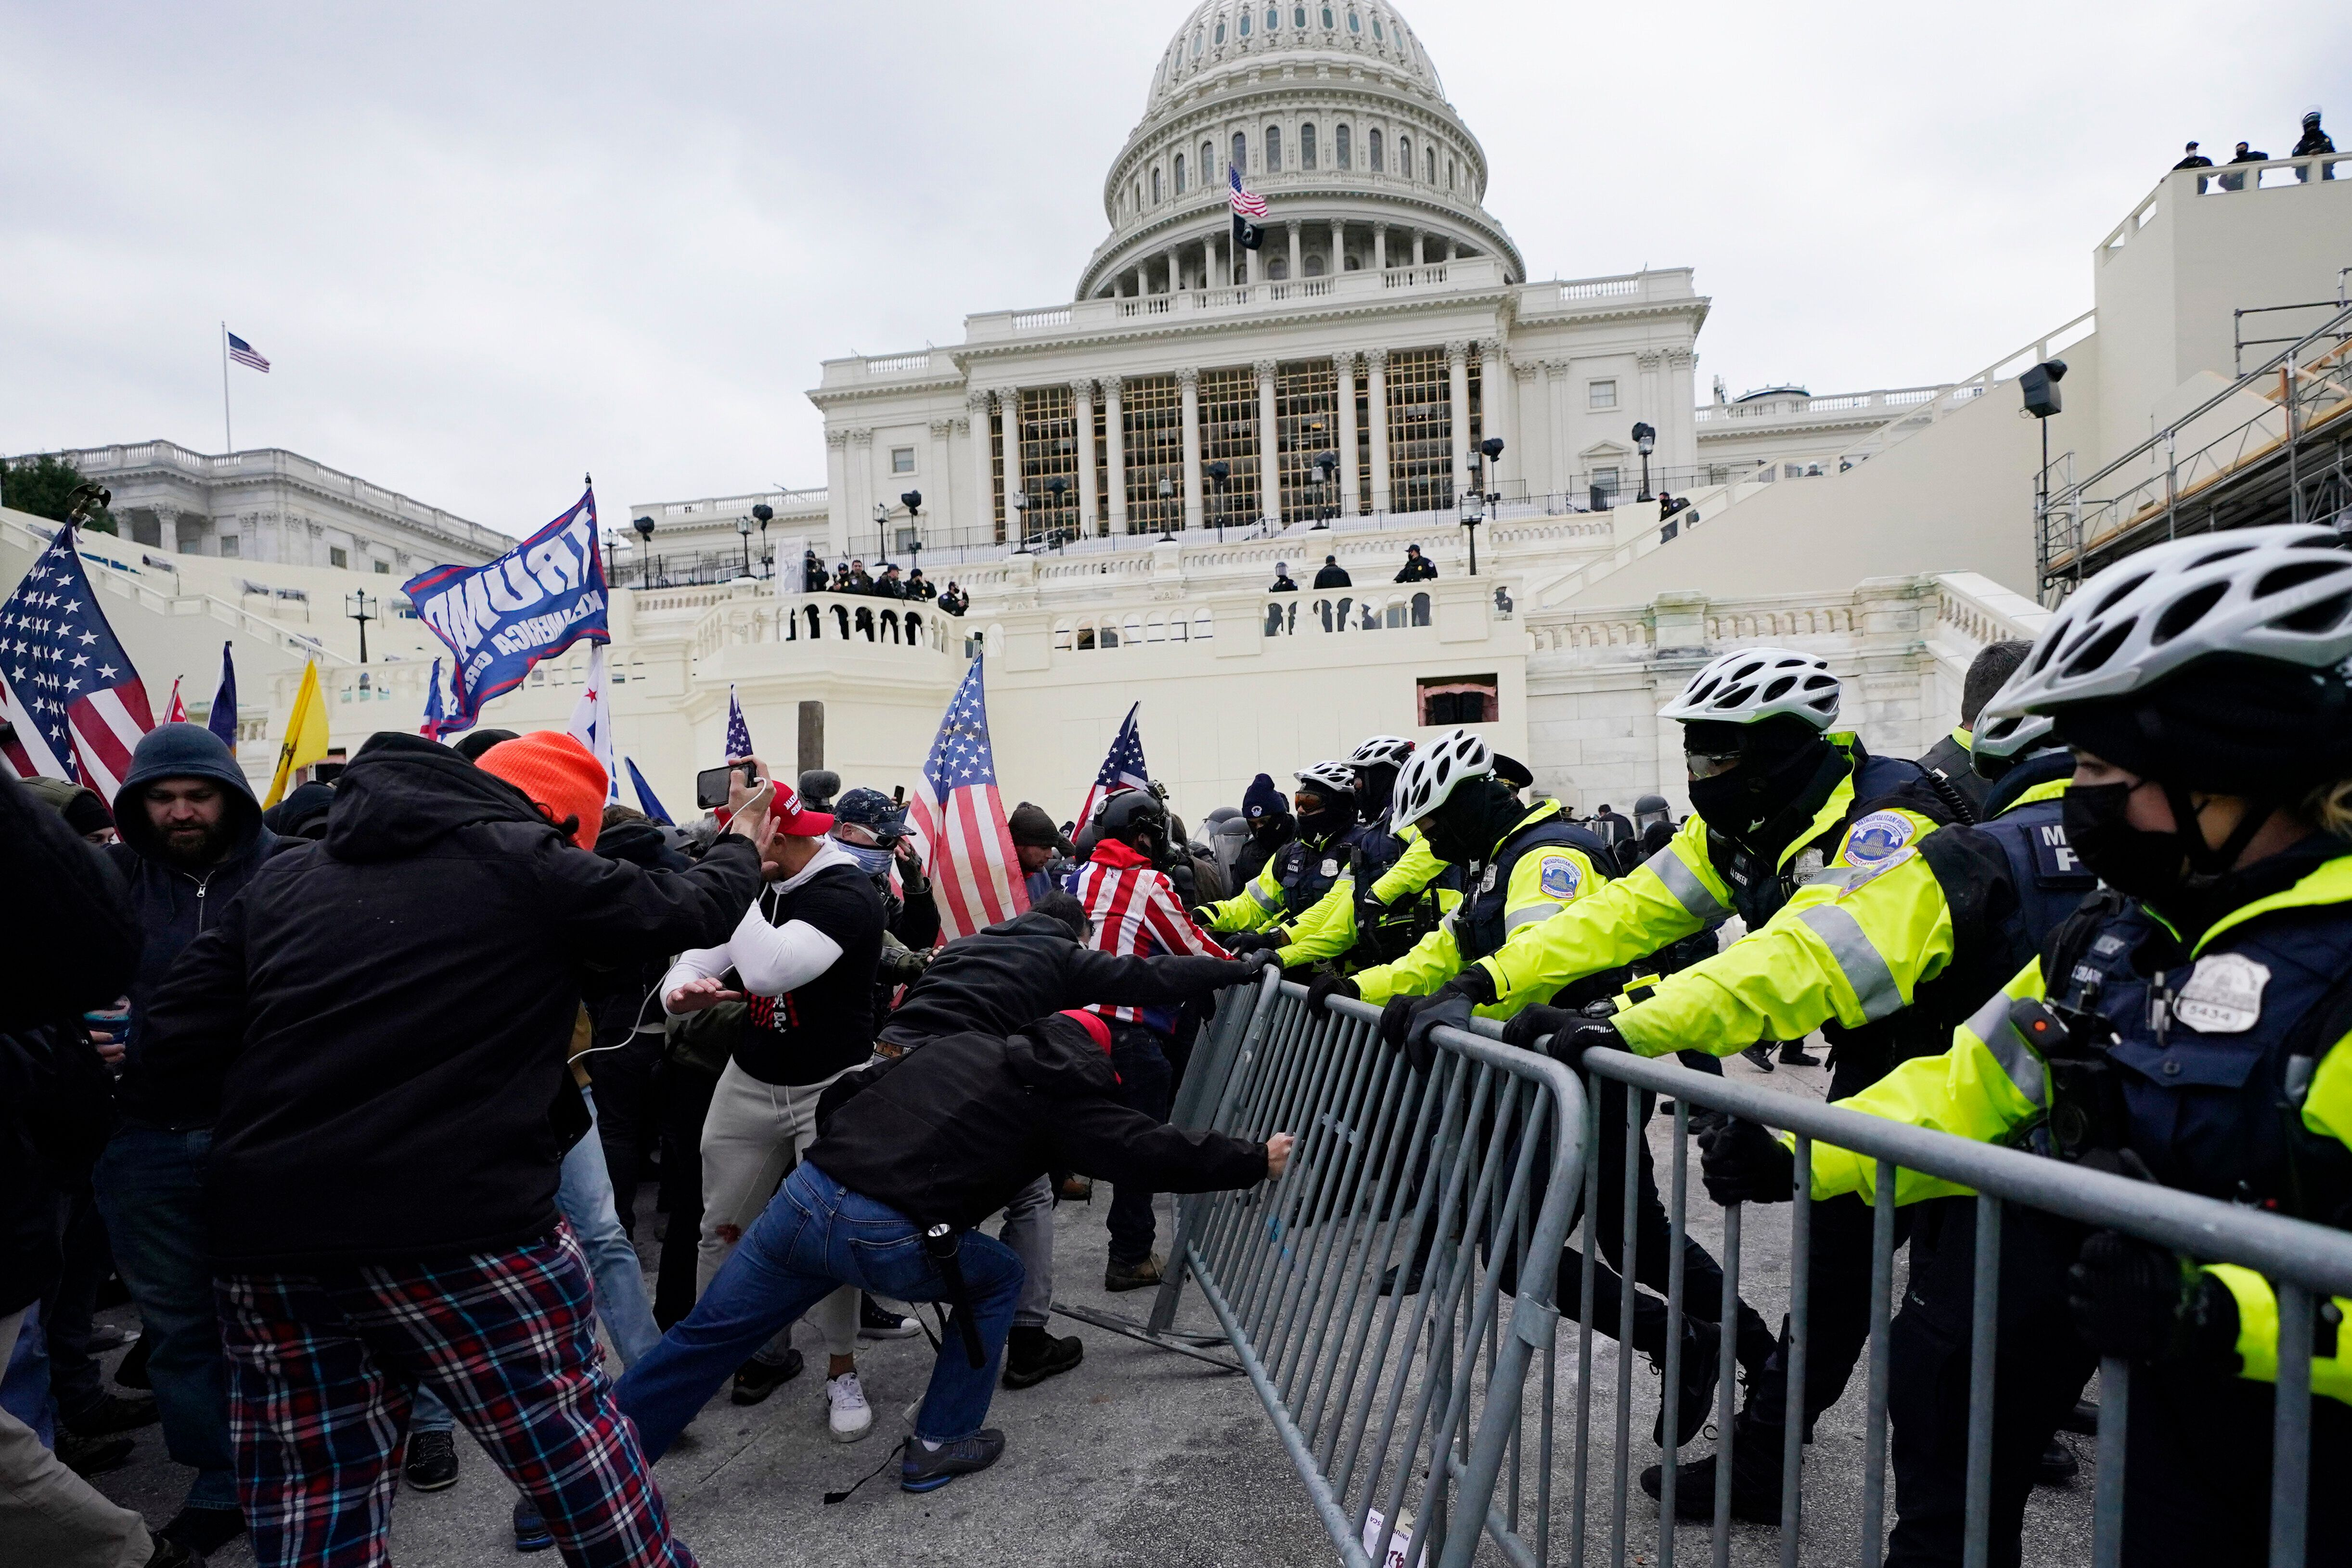 Donald Trump supporters try to break through a police barrier at the U.S. Capitol on Jan. 6. The former president has said he